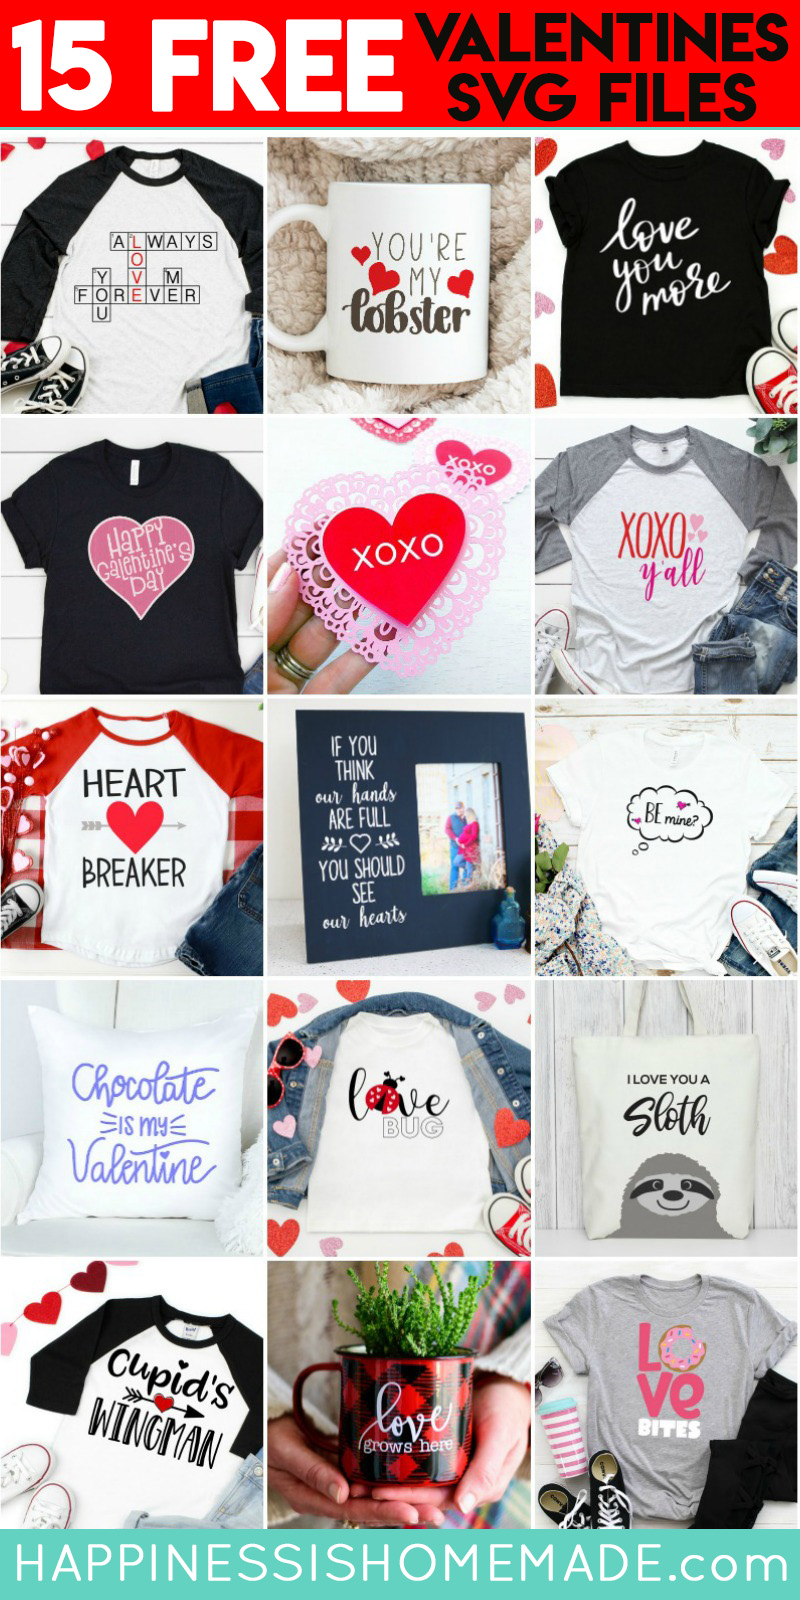 Heartbreaker Shirt Free Valentine S Day Svgs Happiness Is Homemade